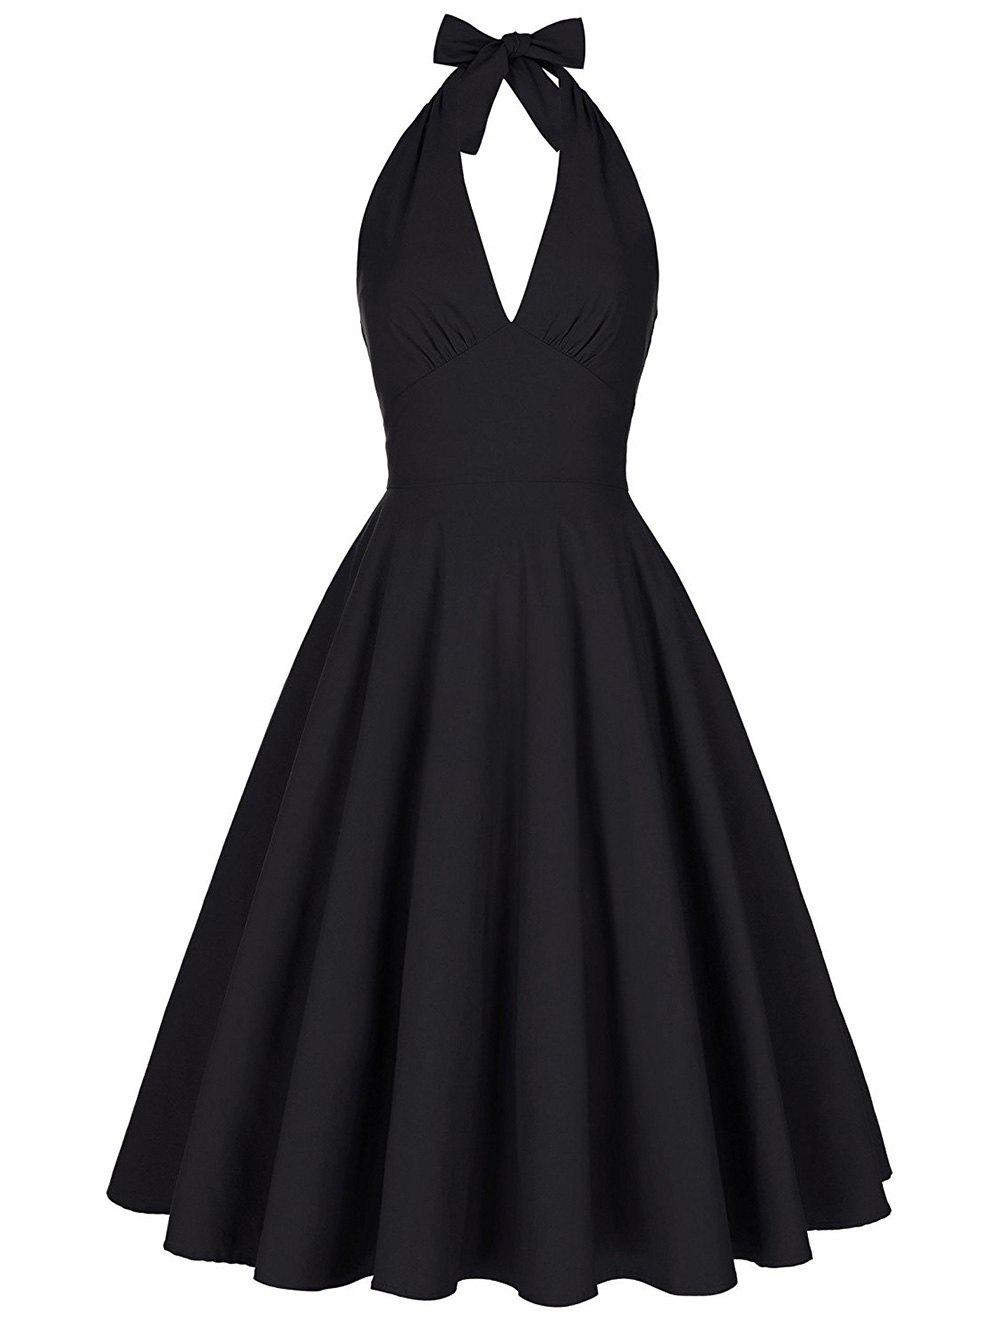 Halter Low Back Plunge Work Christmas Party DressWOMEN<br><br>Size: M; Color: BLACK; Style: Vintage; Material: Cotton,Cotton Blend,Polyester; Silhouette: Ball Gown; Dresses Length: Knee-Length; Neckline: Halter; Sleeve Length: Sleeveless; Embellishment: Backless; Pattern Type: Solid; With Belt: No; Season: Fall,Spring,Summer; Weight: 0.4150kg; Package Contents: 1 x Dress;